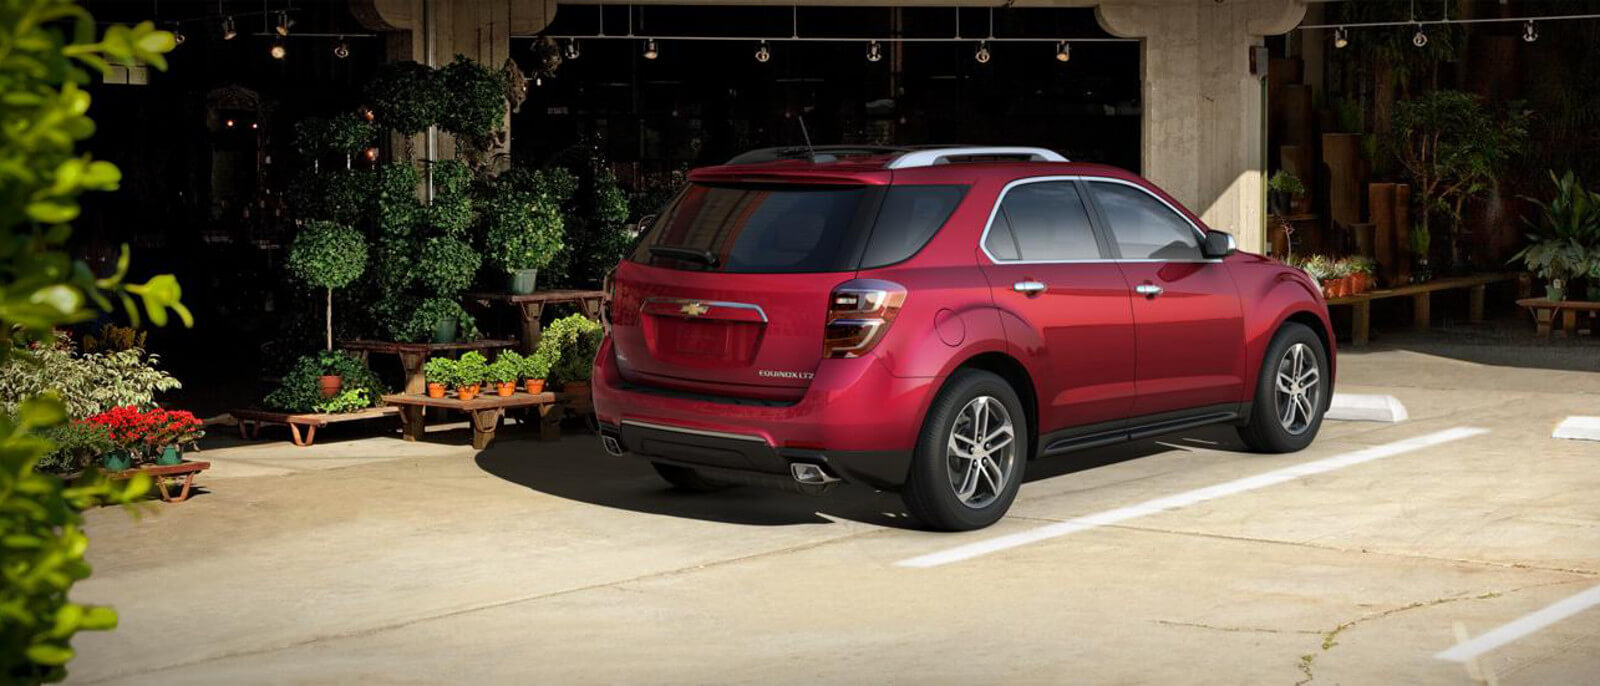 2016 Chevy Equinox Rear Exterior